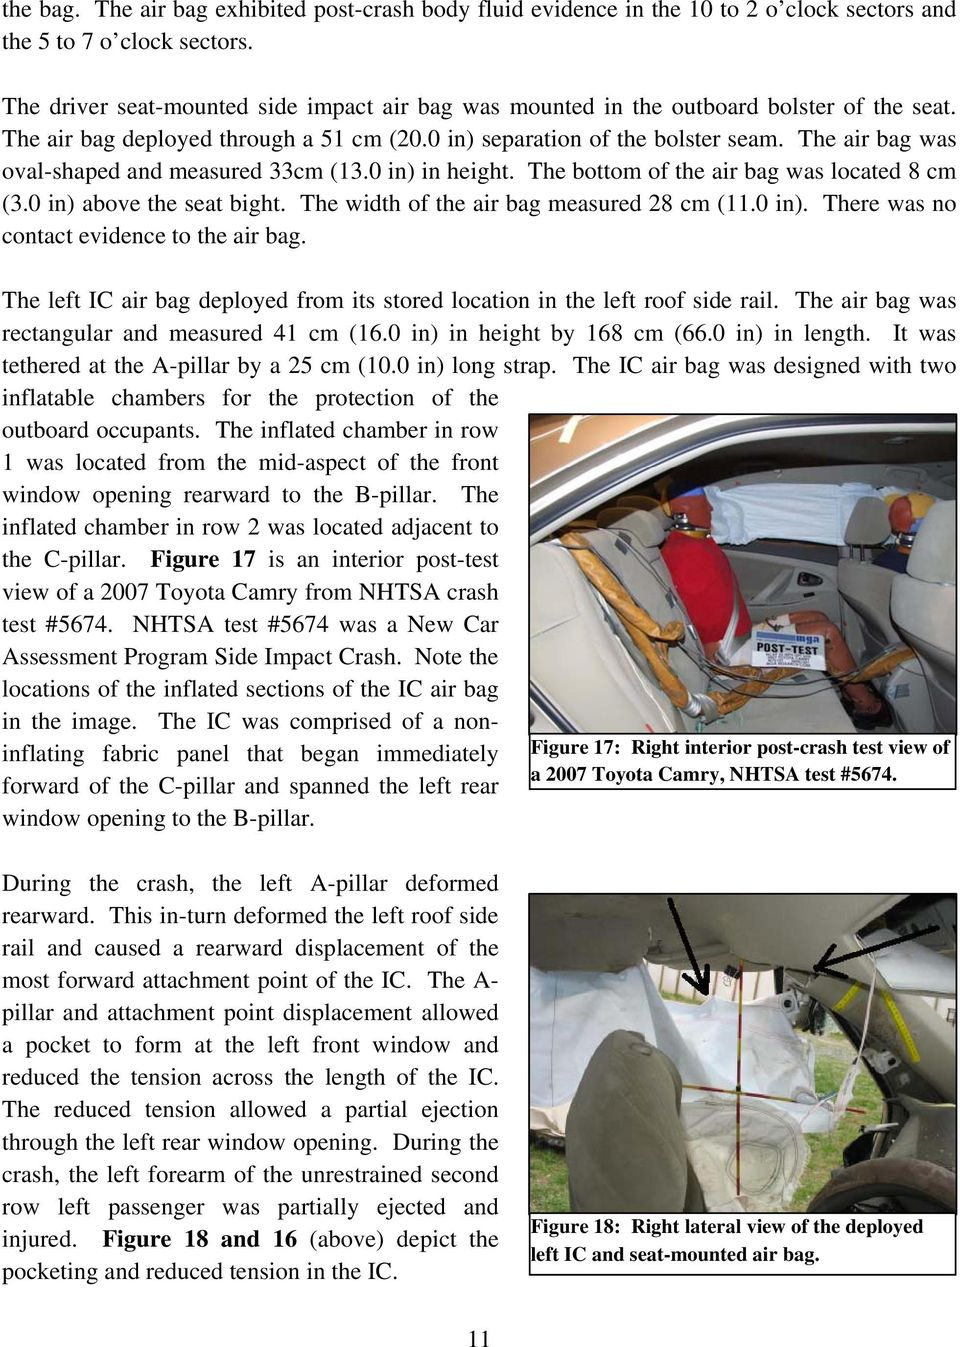 The air bag was oval-shaped and measured 33cm (13.0 in) in height. The bottom of the air bag was located 8 cm (3.0 in) above the seat bight. The width of the air bag measured 28 cm (11.0 in). There was no contact evidence to the air bag.